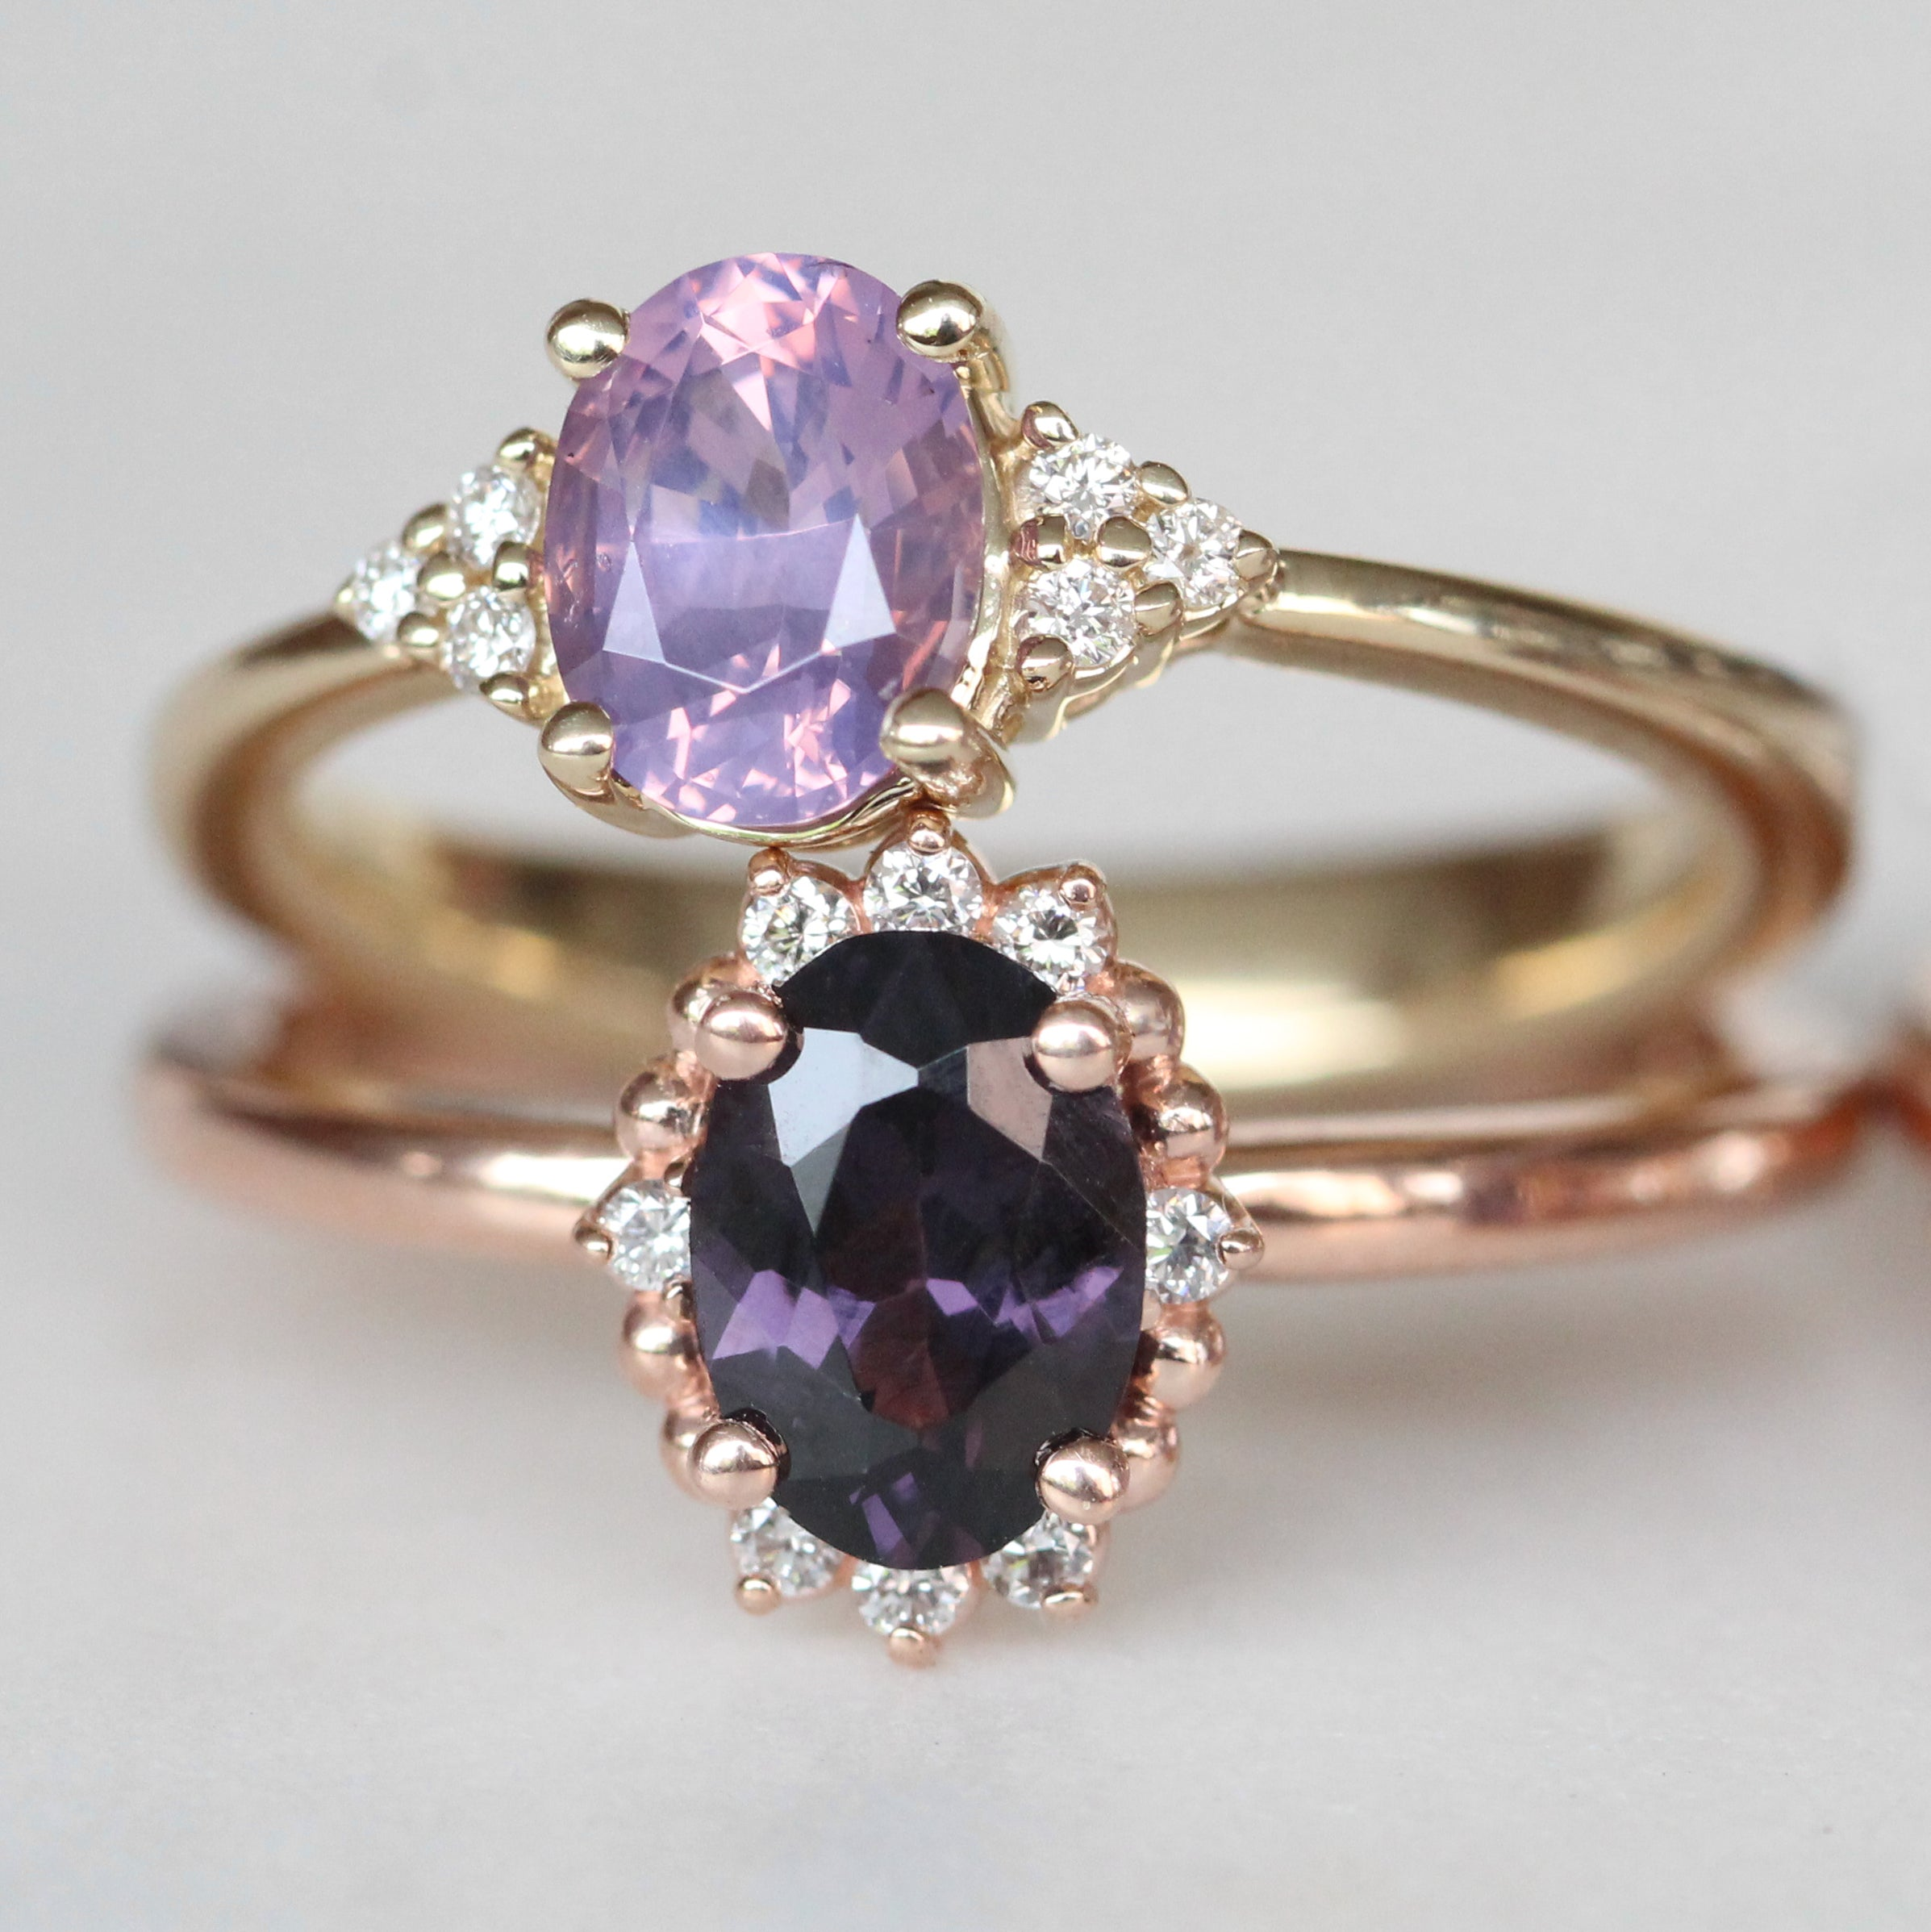 Imogene ring - opalescent purple Sapphire 14k yellow gold - ready to size and ship - Salt & Pepper Celestial Diamond Engagement Rings and Wedding Bands  by Midwinter Co.